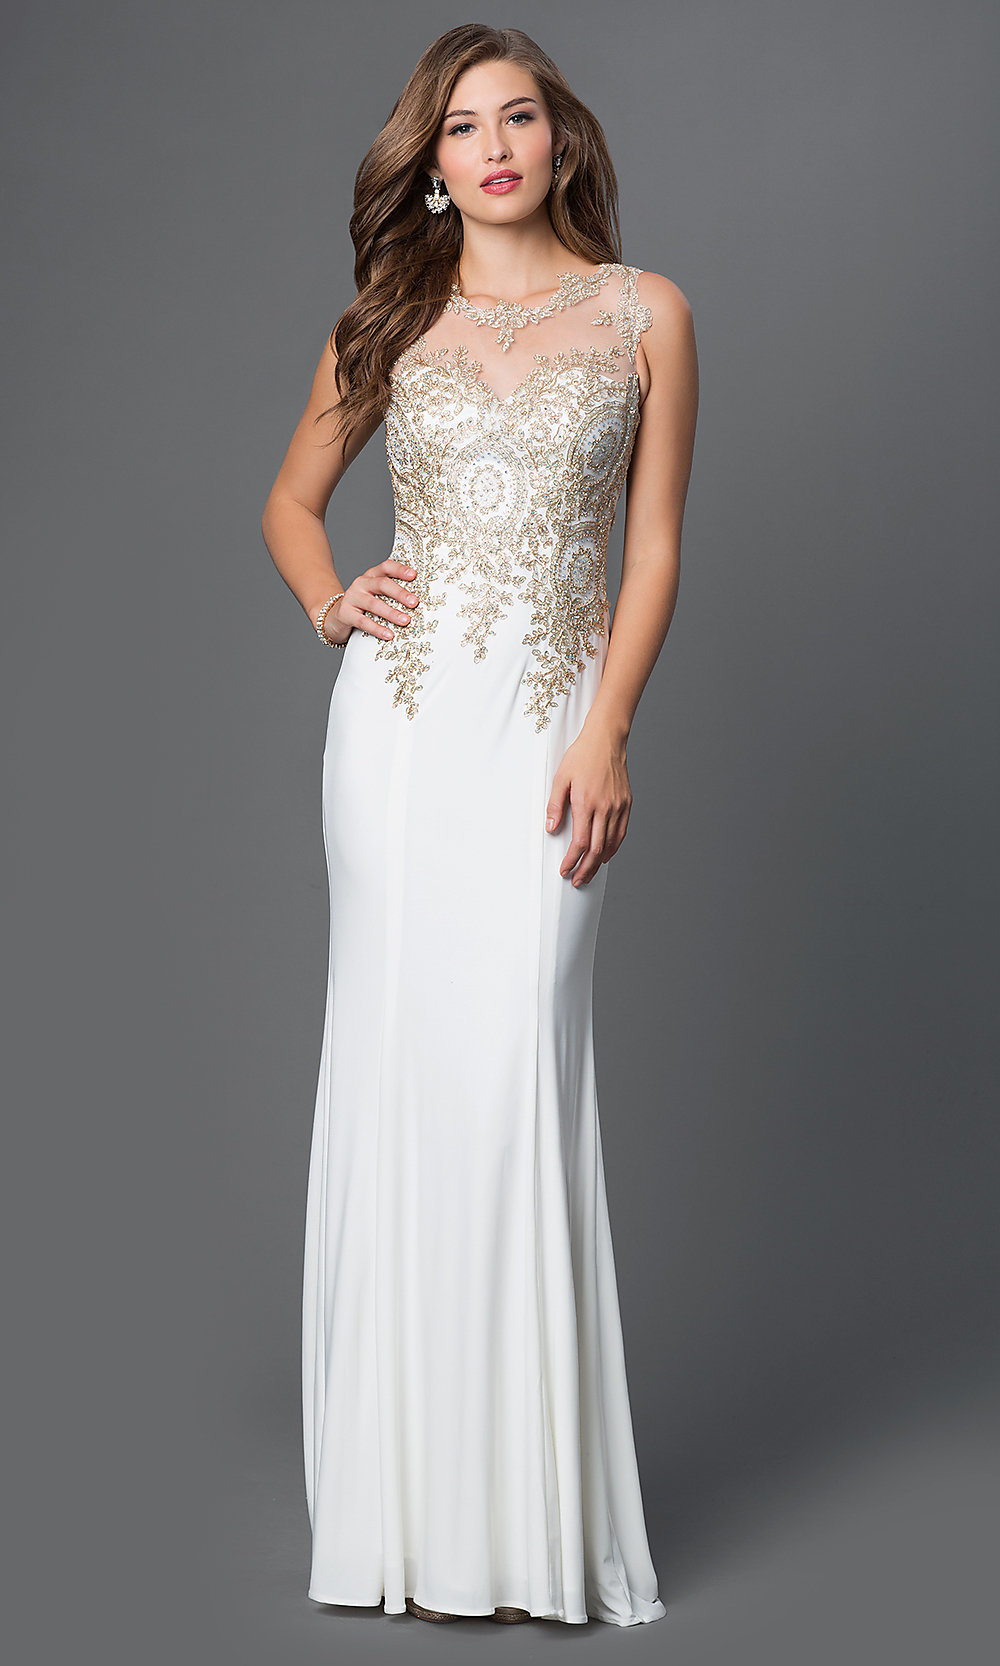 Long Illusion Prom Dress with Train - PromGirl